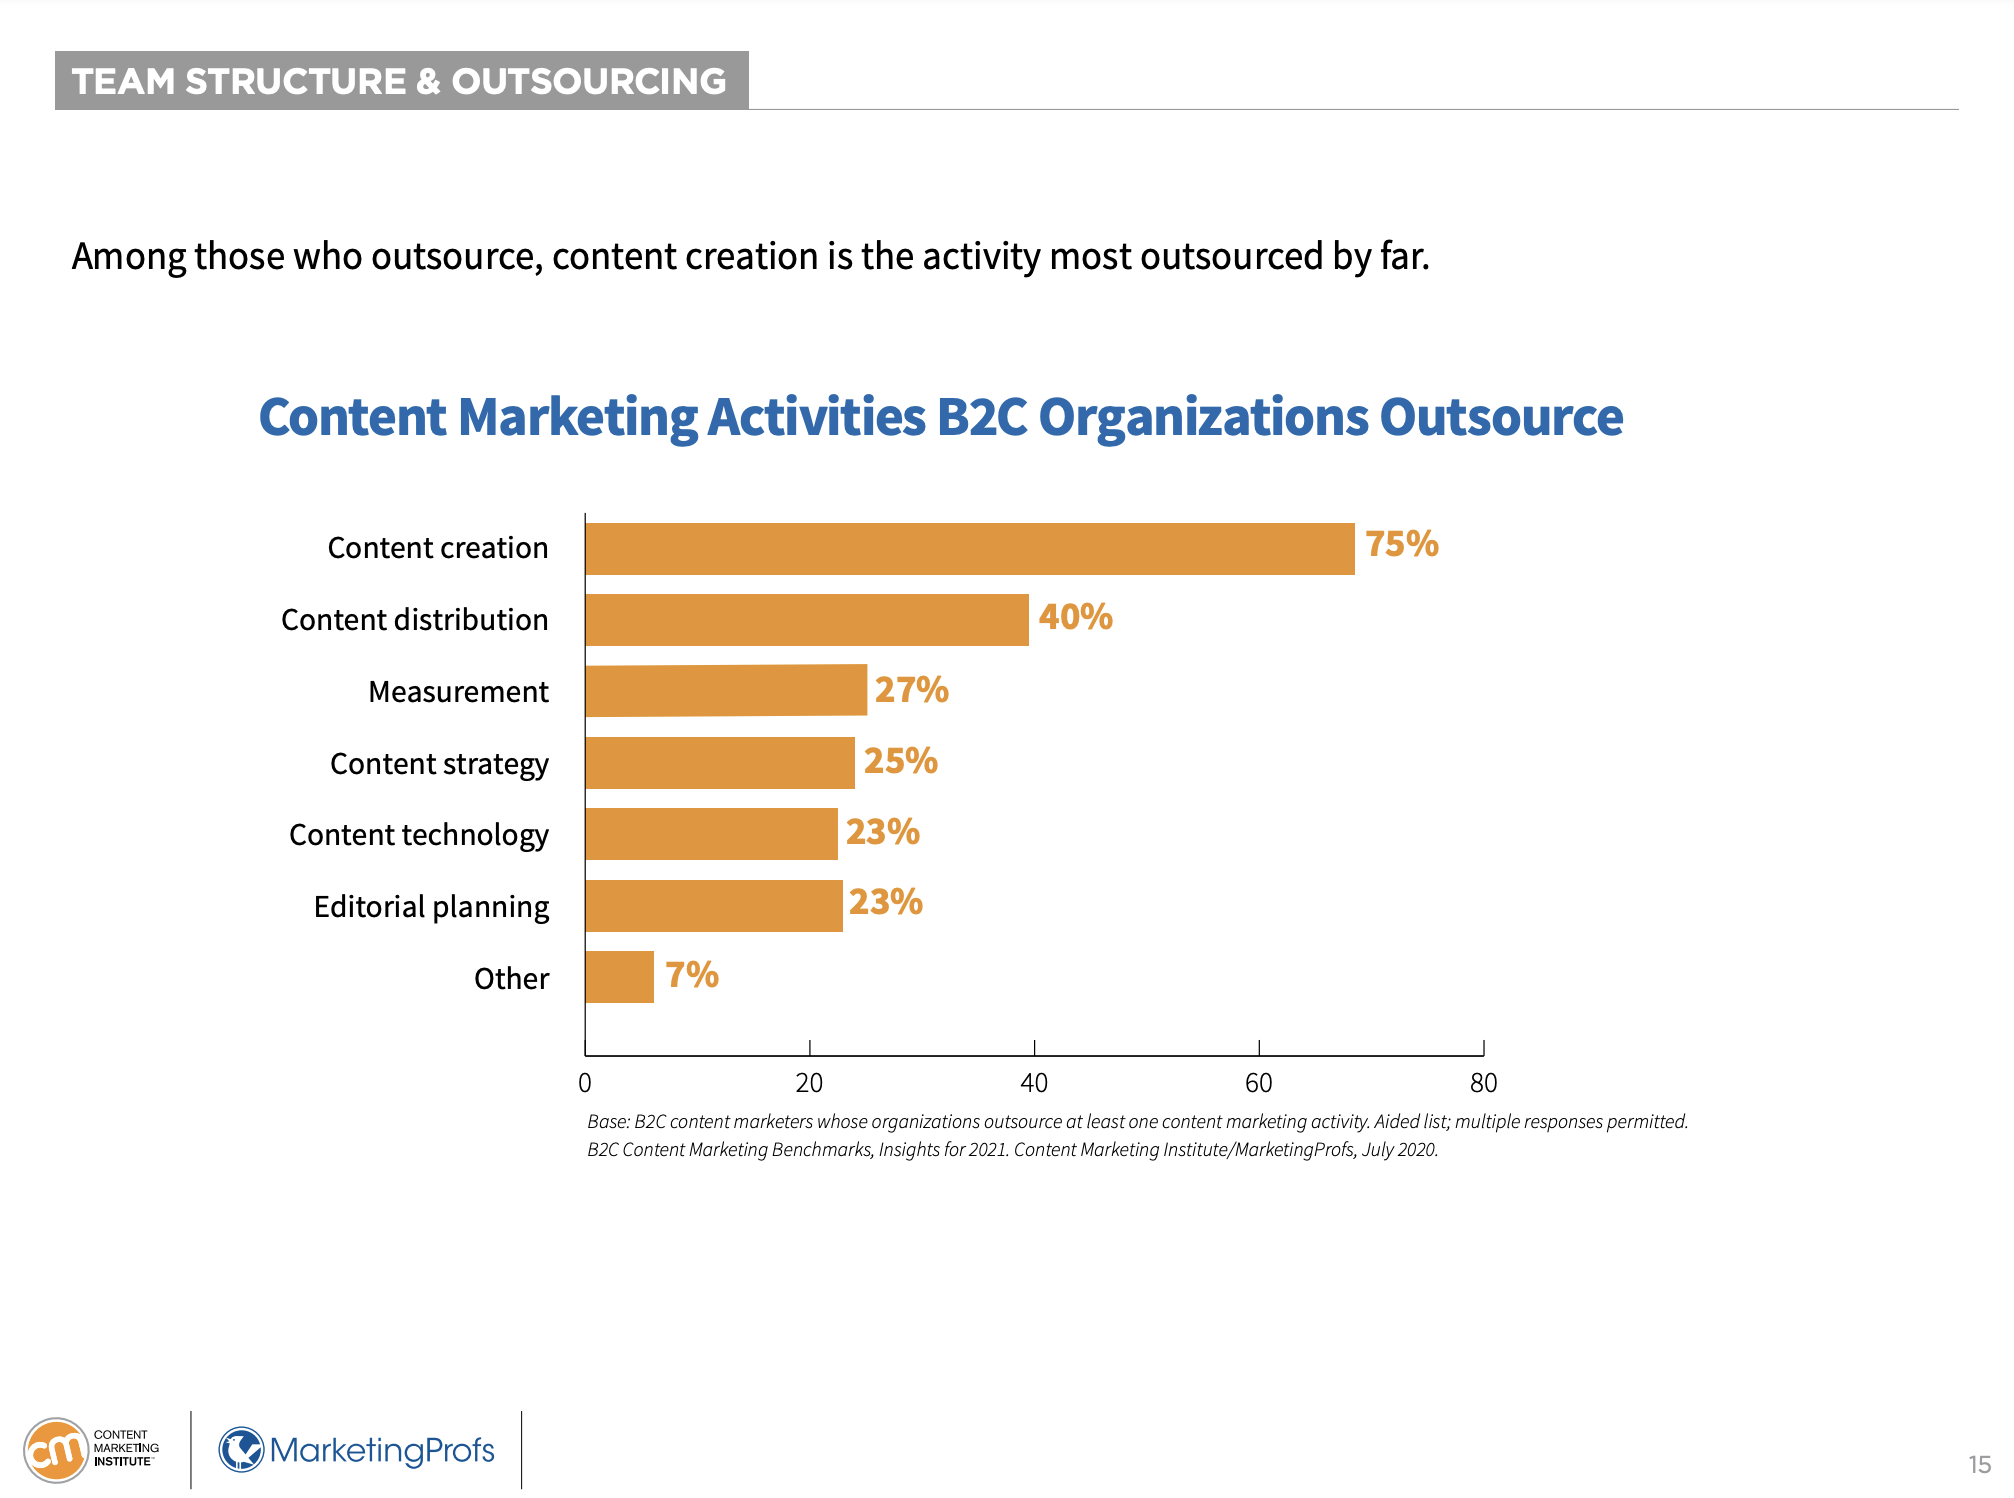 content marketing activities b2b orgs outsource